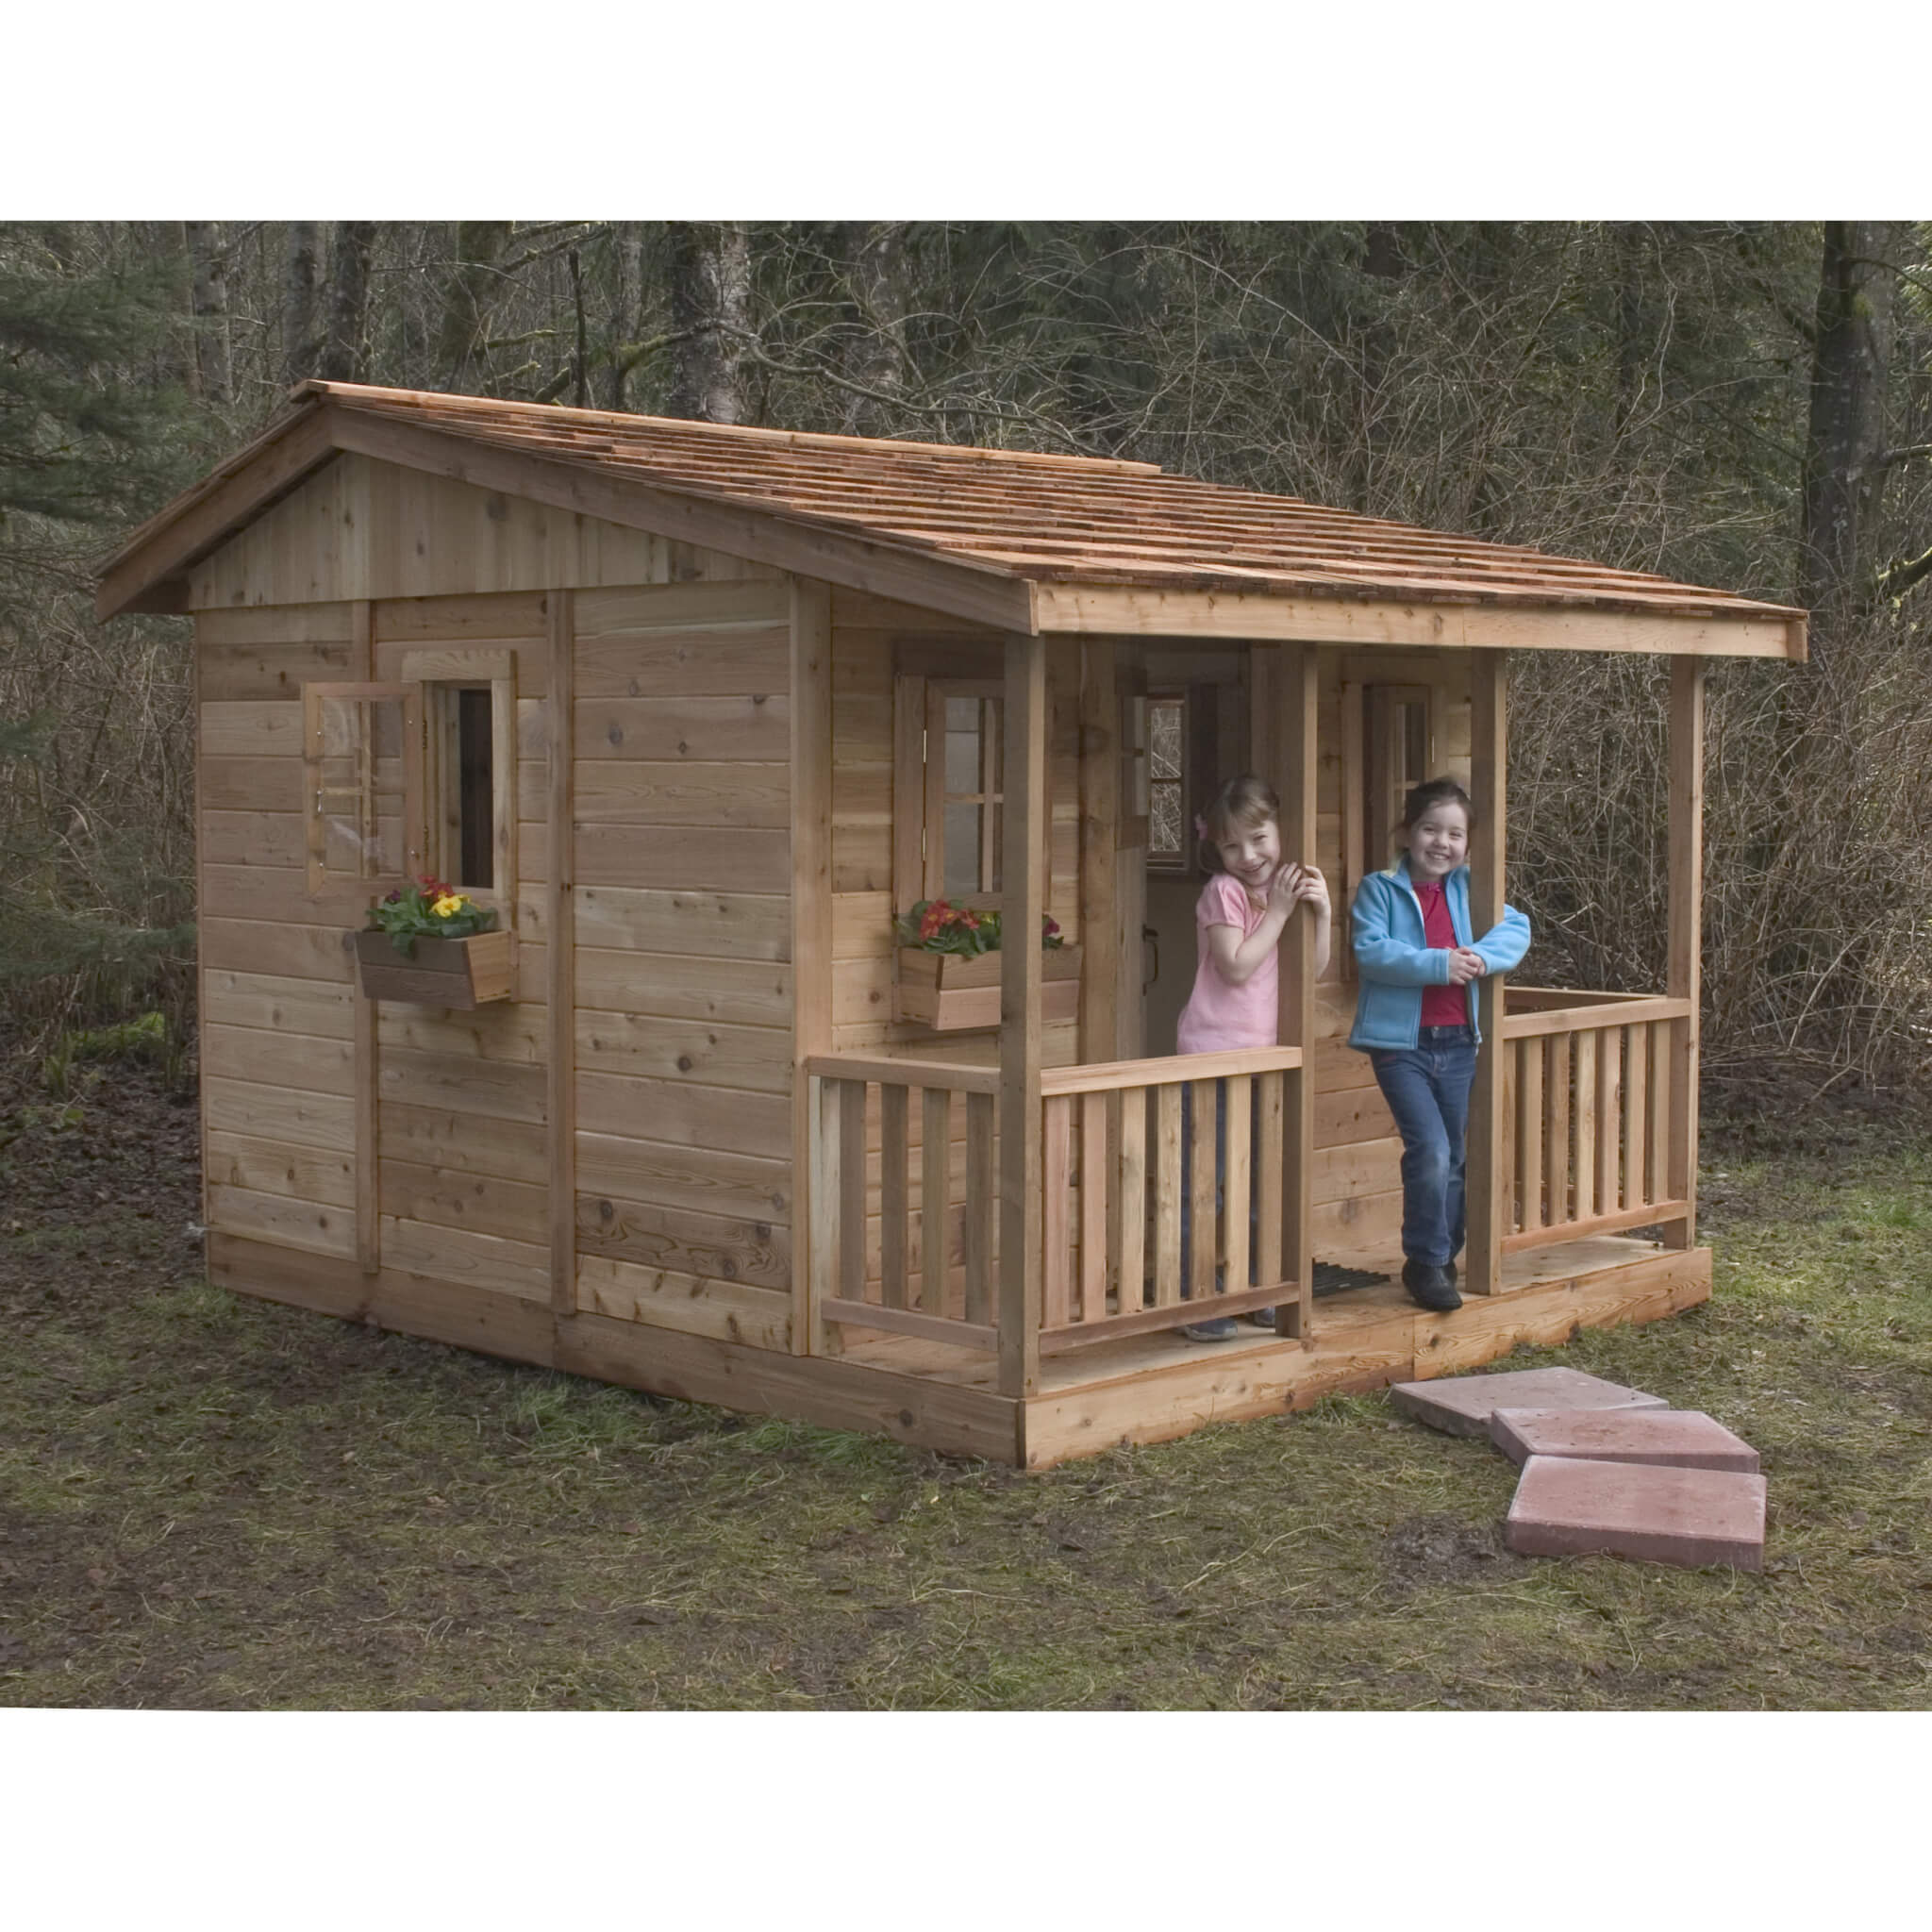 Red Cedar Cabin Playhouse